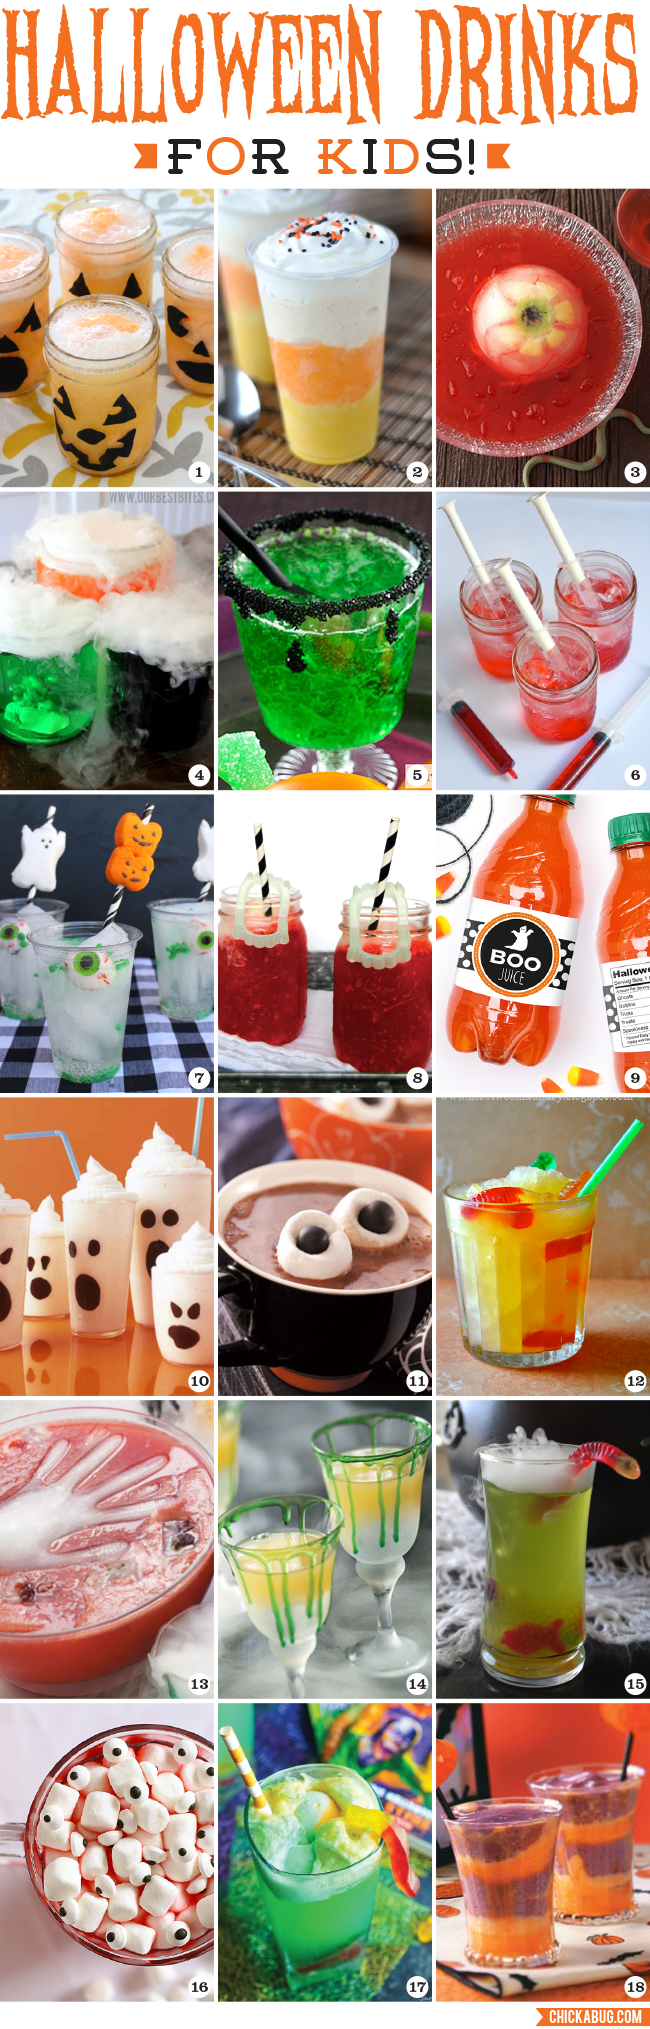 Halloween drinks for kids chickabug for Party food and drink ideas